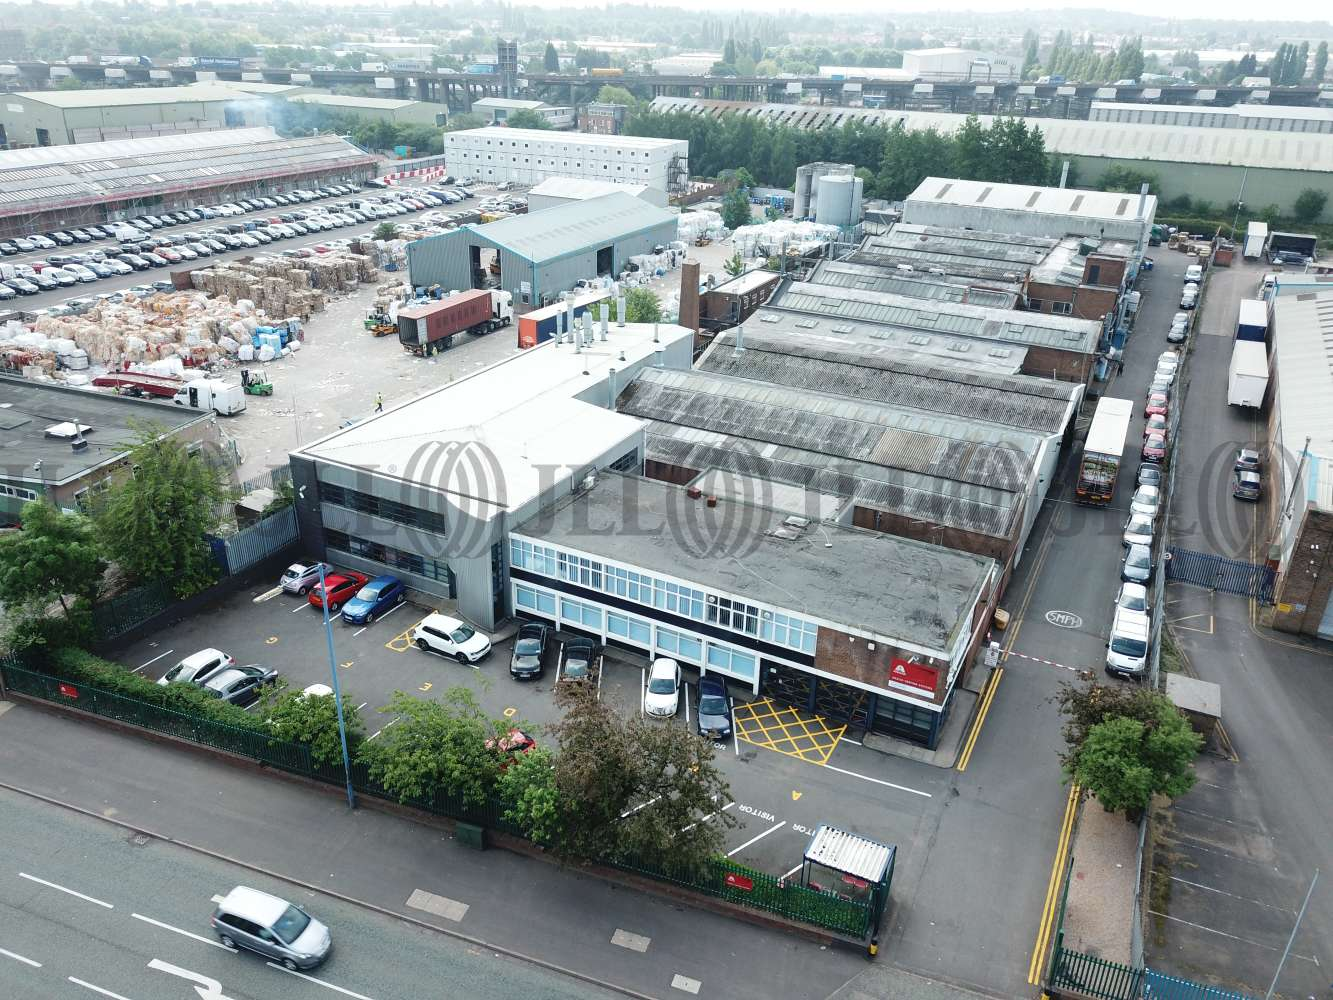 Industrial West bromwich, B70 7JZ - The Axalta Coating Systems Building